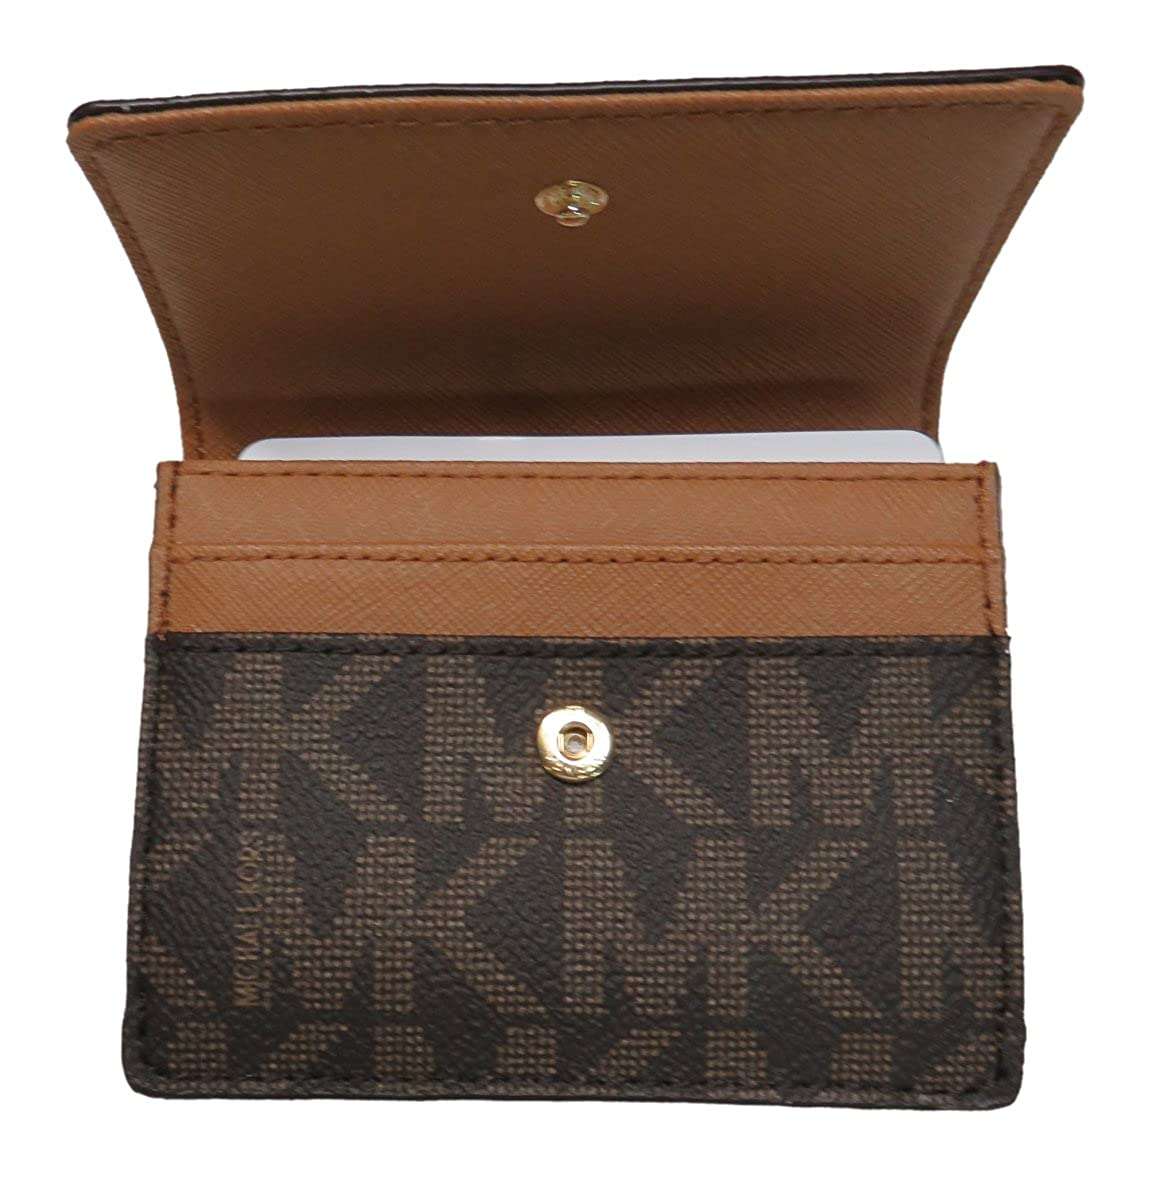 7816522c1243 Michael Kors Jet Set Travel Card Case Wallet Brown Acorn at Amazon Women s  Clothing store